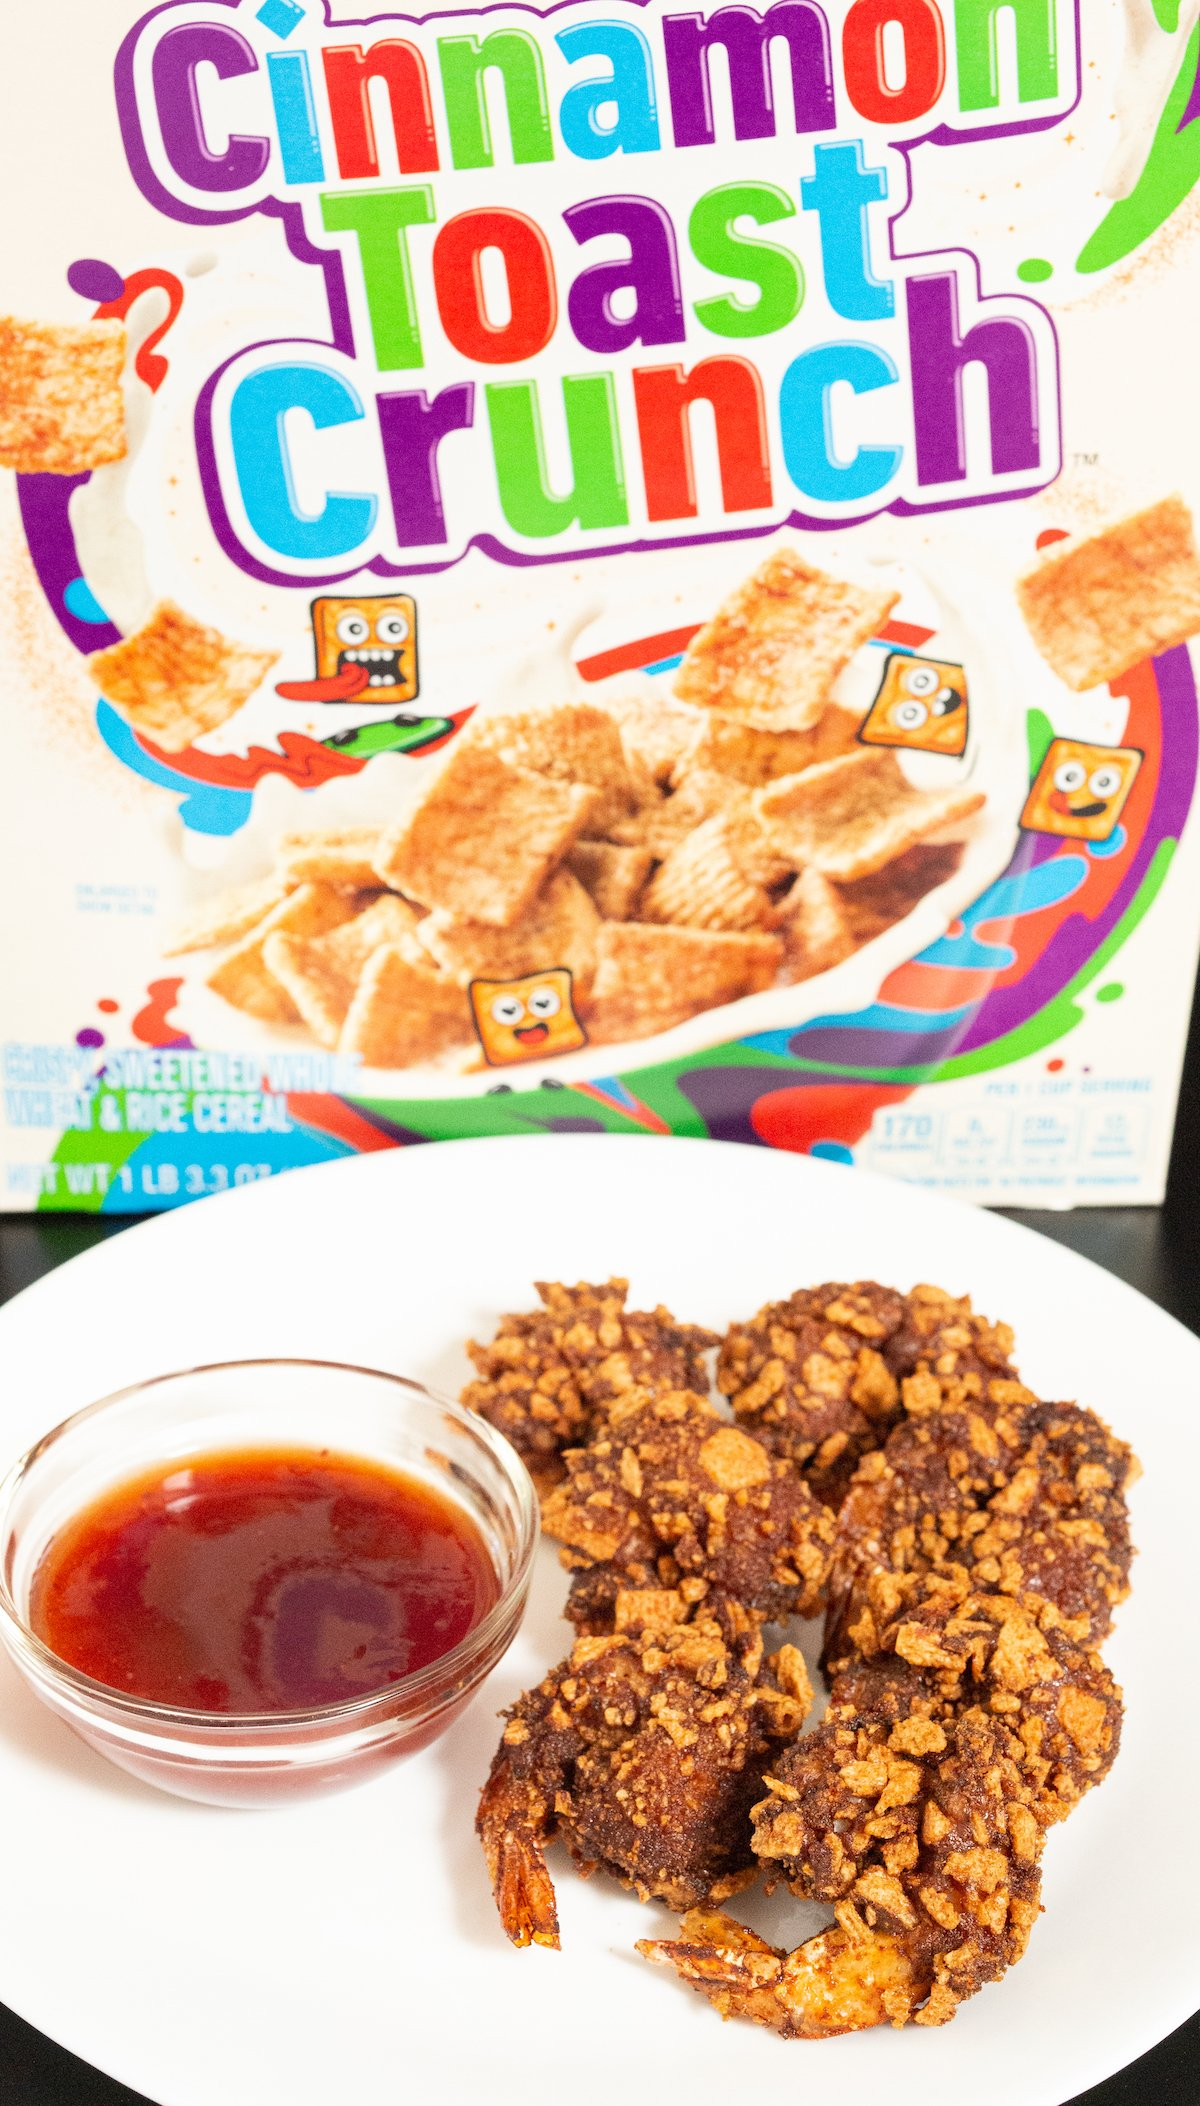 Six Cinnamon Toast Crunch battered and fried shrimp sit on a white plate next to strawberry habanero dipping sauce and in front of a Cinnamon Toast Crunch cereal box.